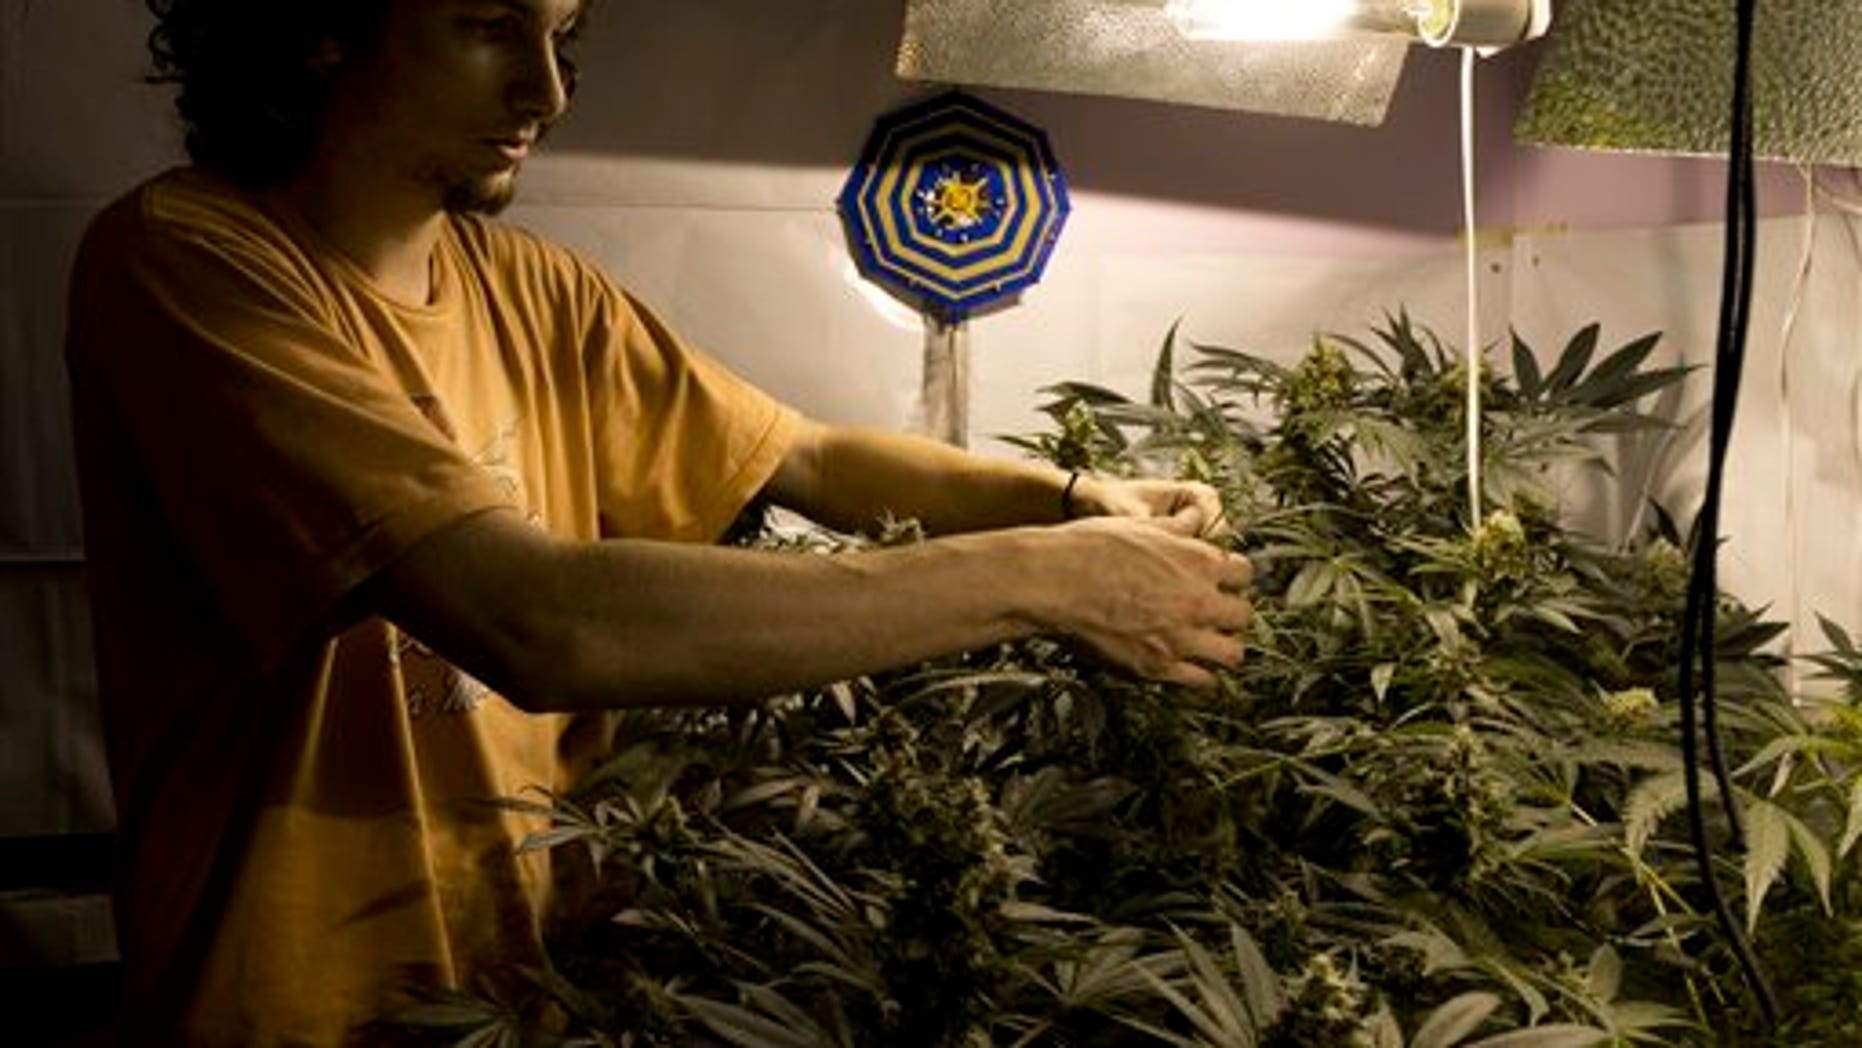 Juan Palese, a marijuana grower, shows his crop outside of Montevideo, Uruguay, Wednesday, Dic. 18, 2013. Julissa Reynoso U.S. Ambassador to Uruguay said during an exchange of opinions with Uruguayan Senator Luis Gallo, that the U.S. government is worried that the legalization of marijuana for recreational use will create an opening for organized crime to infiltrate the Uruguayan legal market. Meanwhile the Defense Minister of Uruguay Eleuterio Fernández Huidobro said that the new legal framework was necessary to end The War on Drugs lead by the Unites States. (AP Photo/Matilde Campodonico).